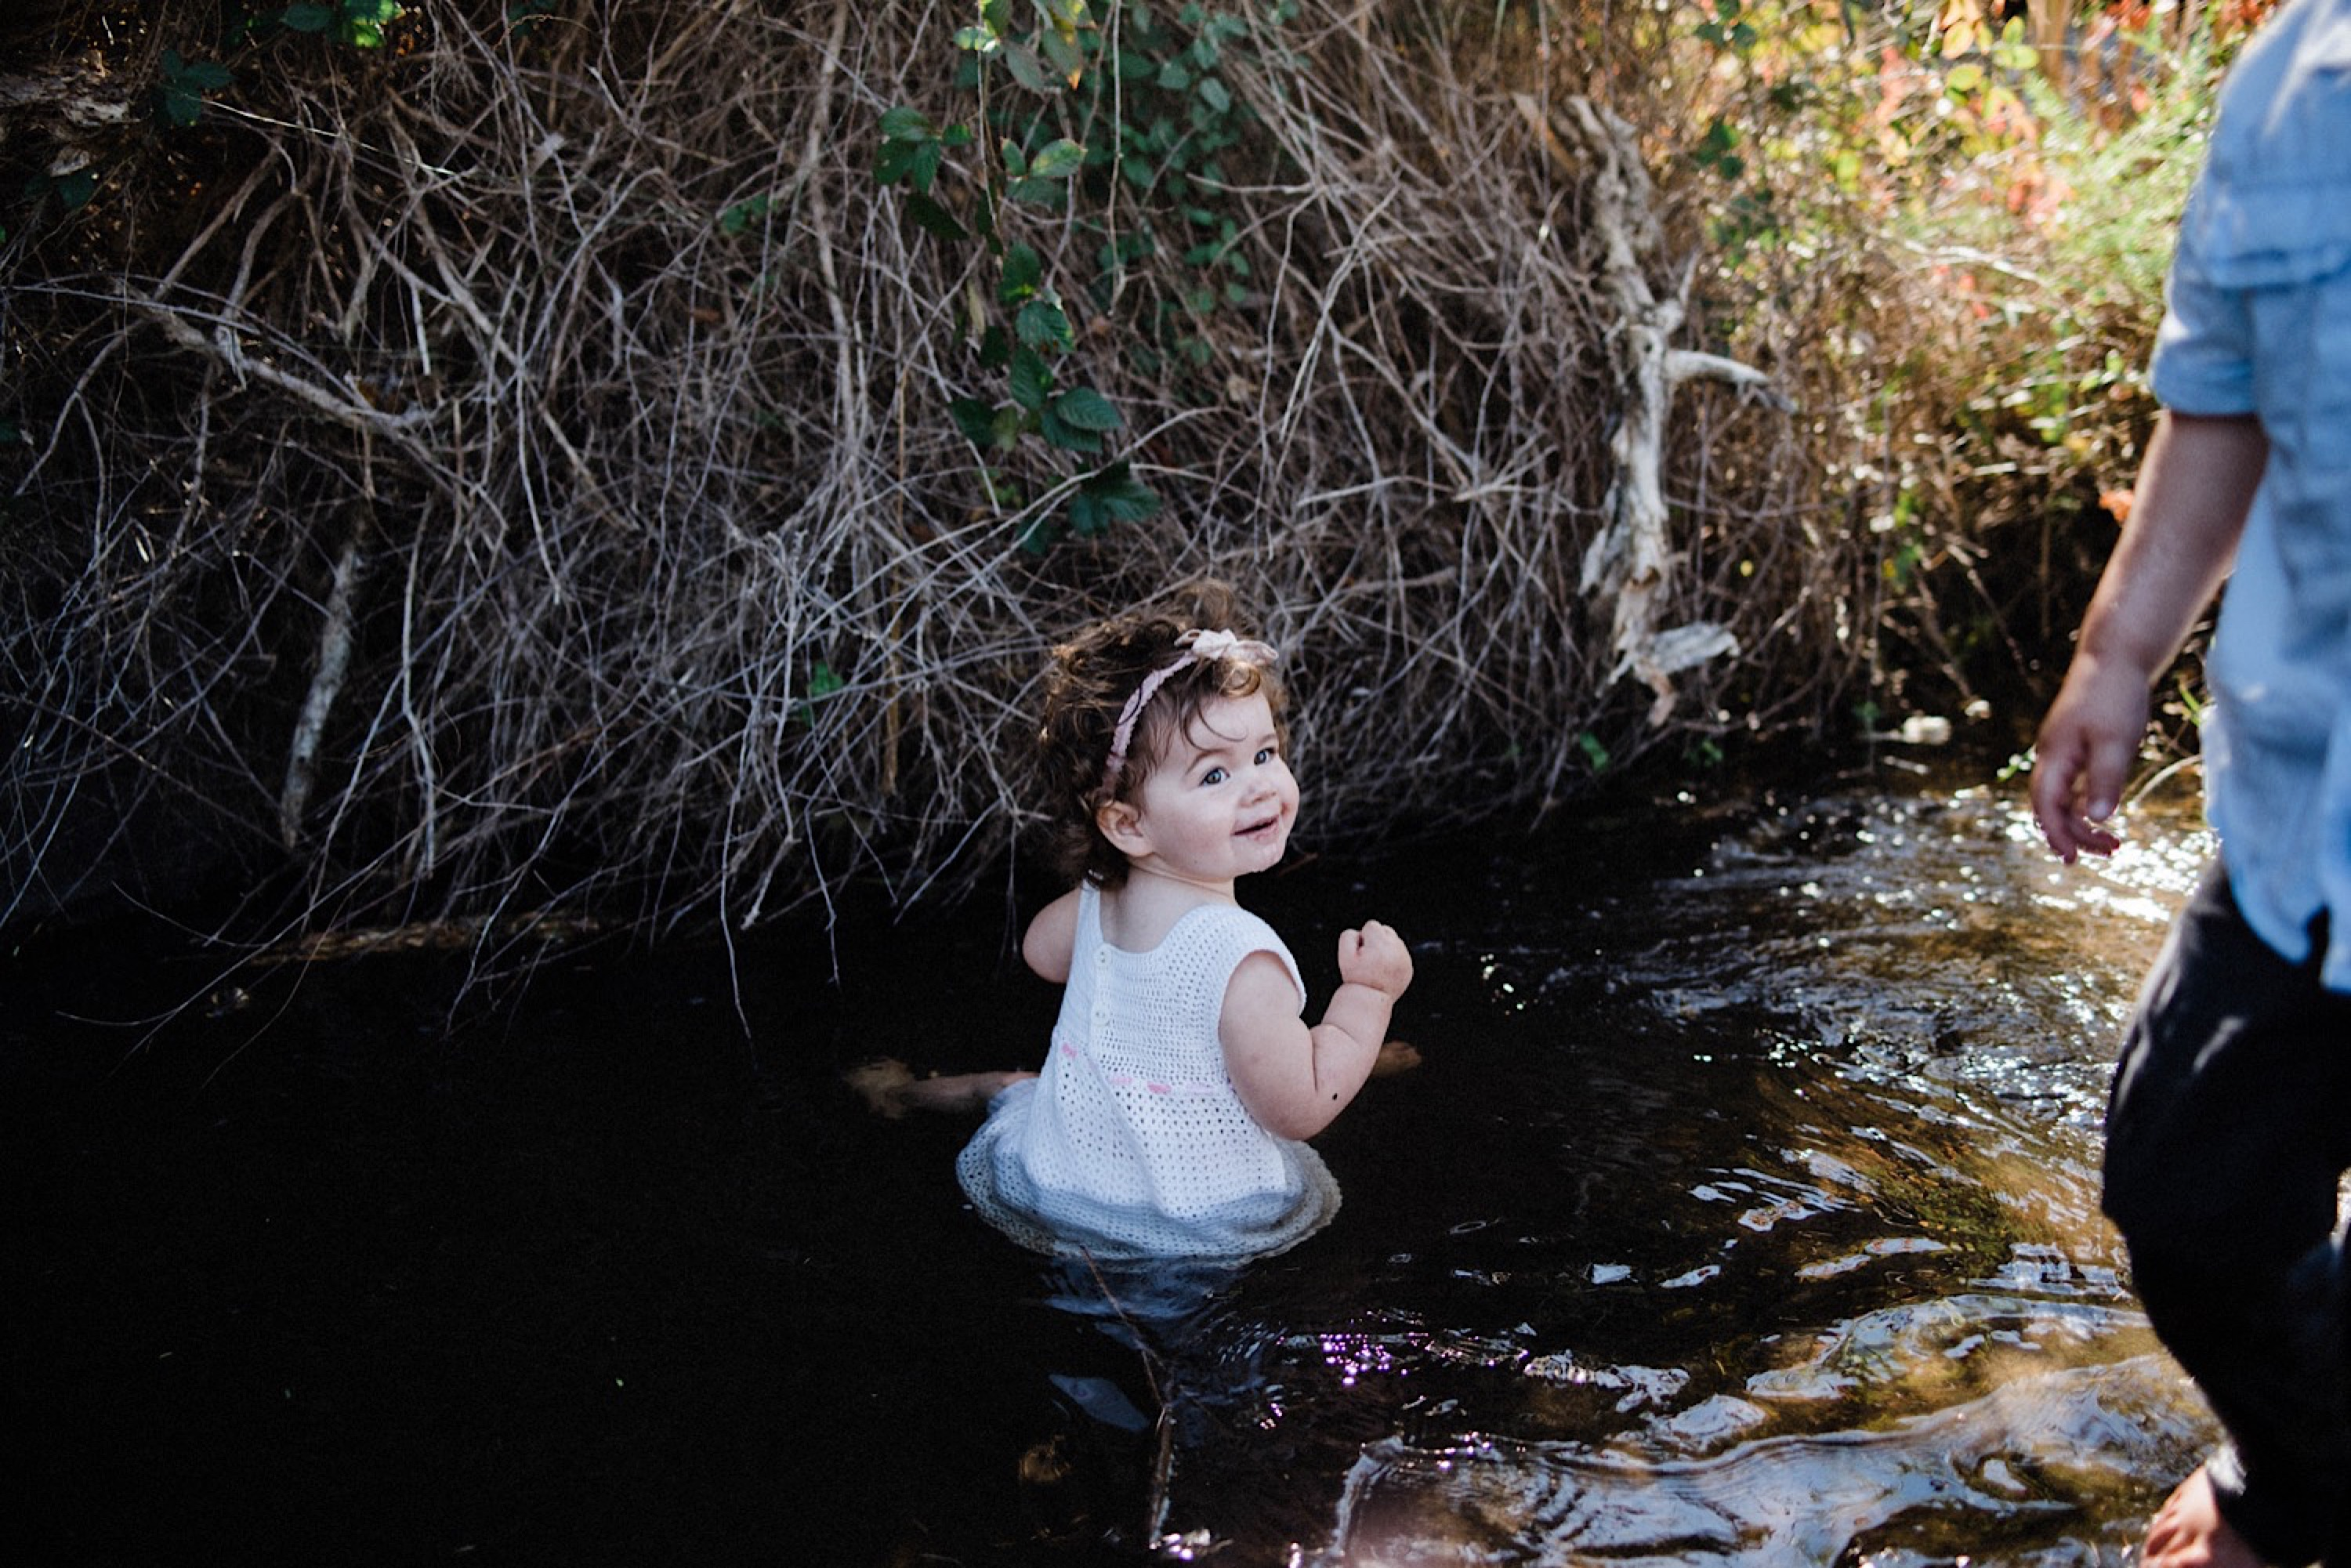 A family photo of a toddler sitting happily in a creek at the end of their Wild Lifestyle Family Portrait Photos.